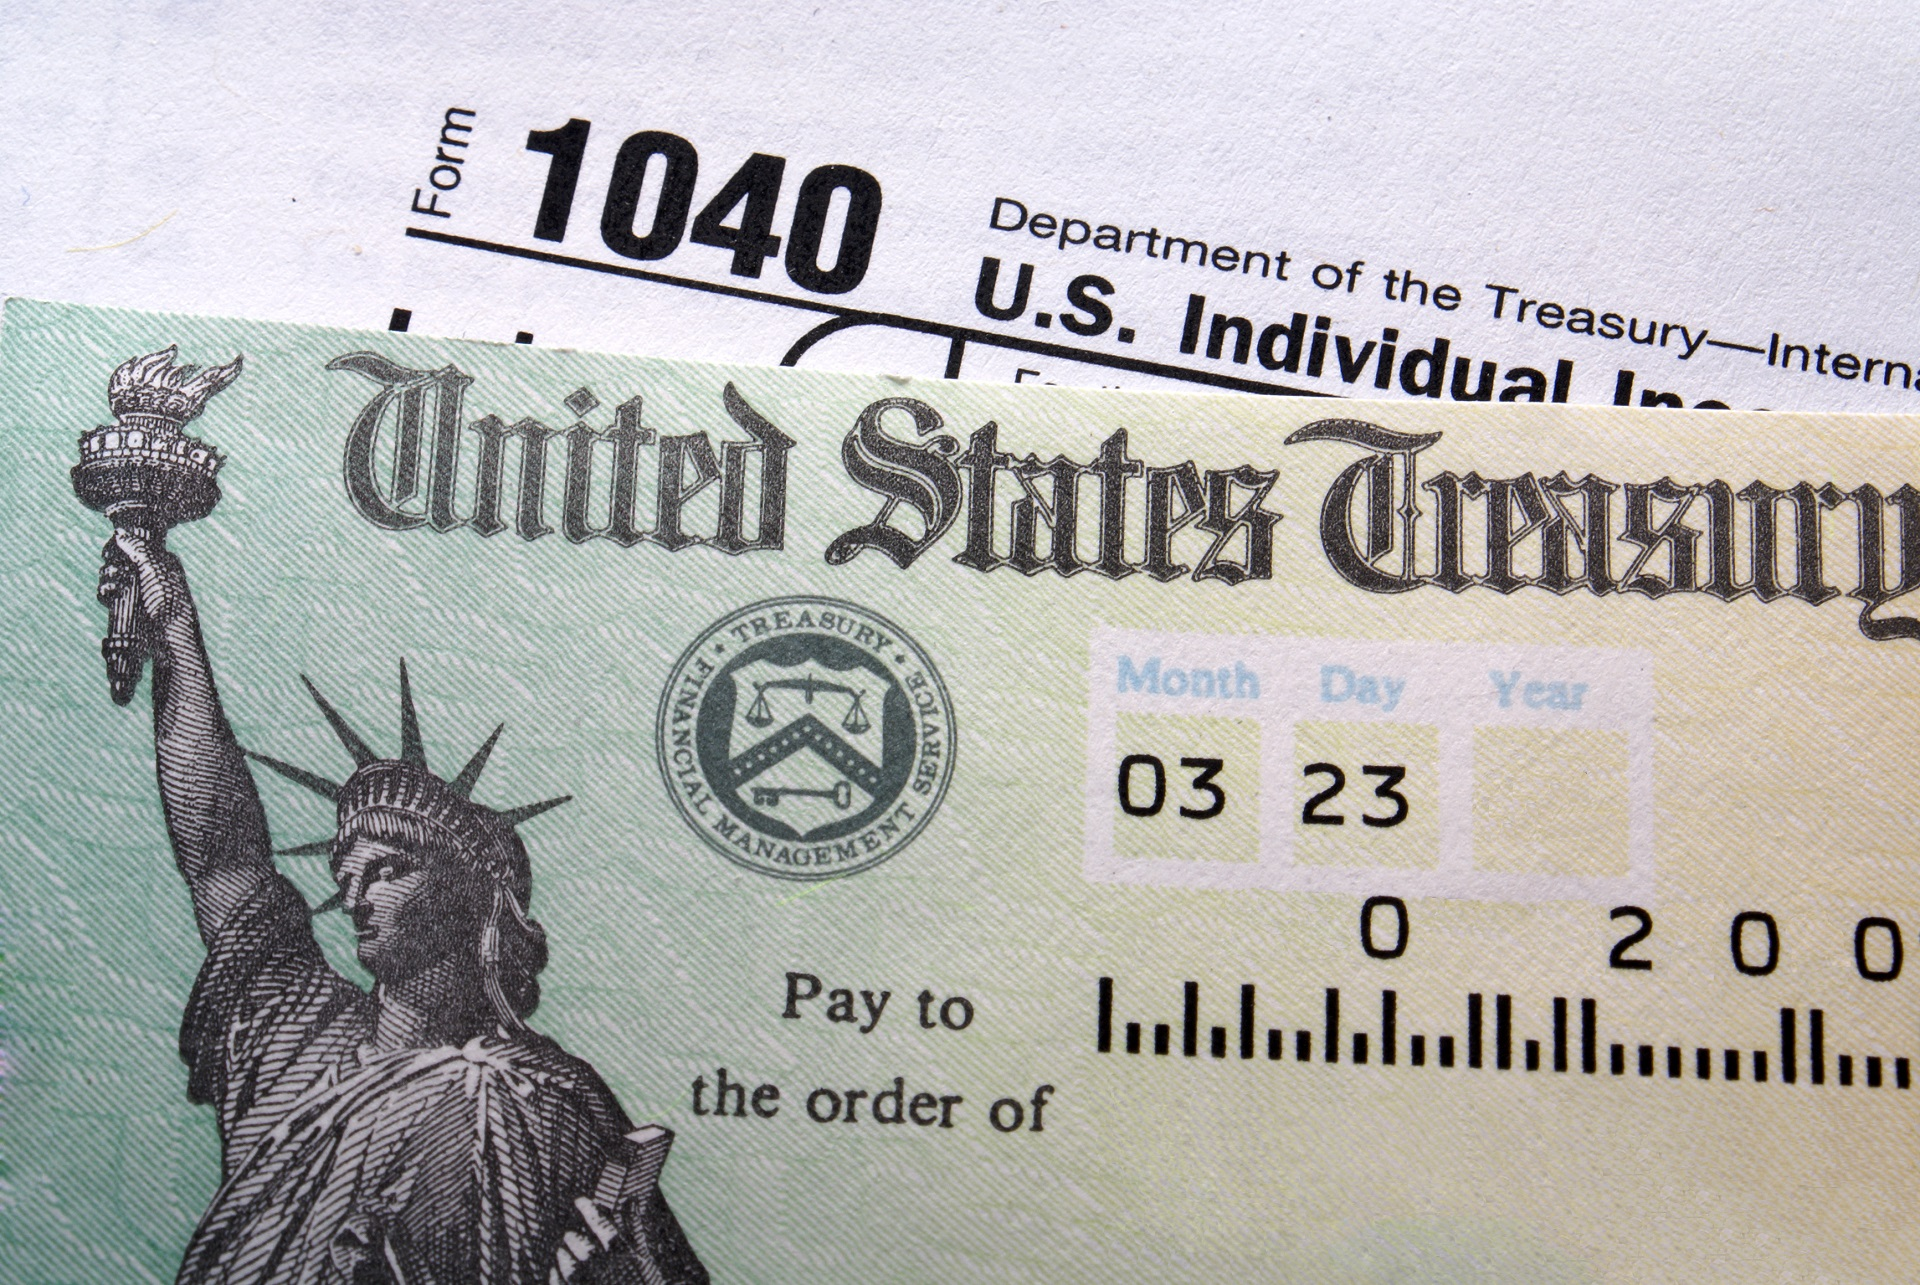 7 Ways to Make Your Tax Refund Count